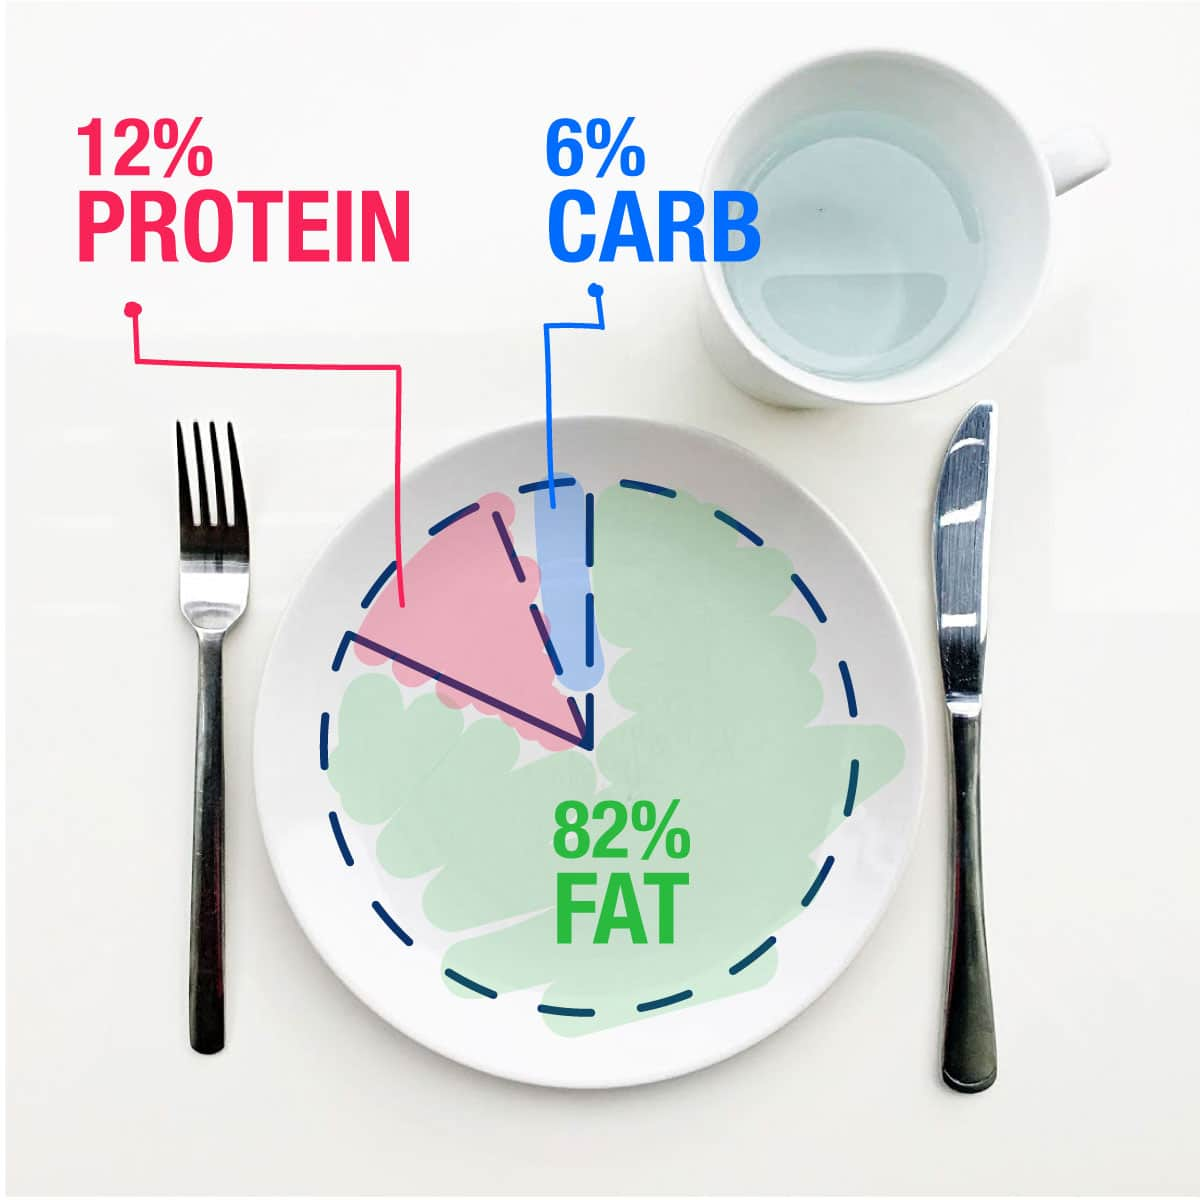 tapering carbs to ketogenic diet